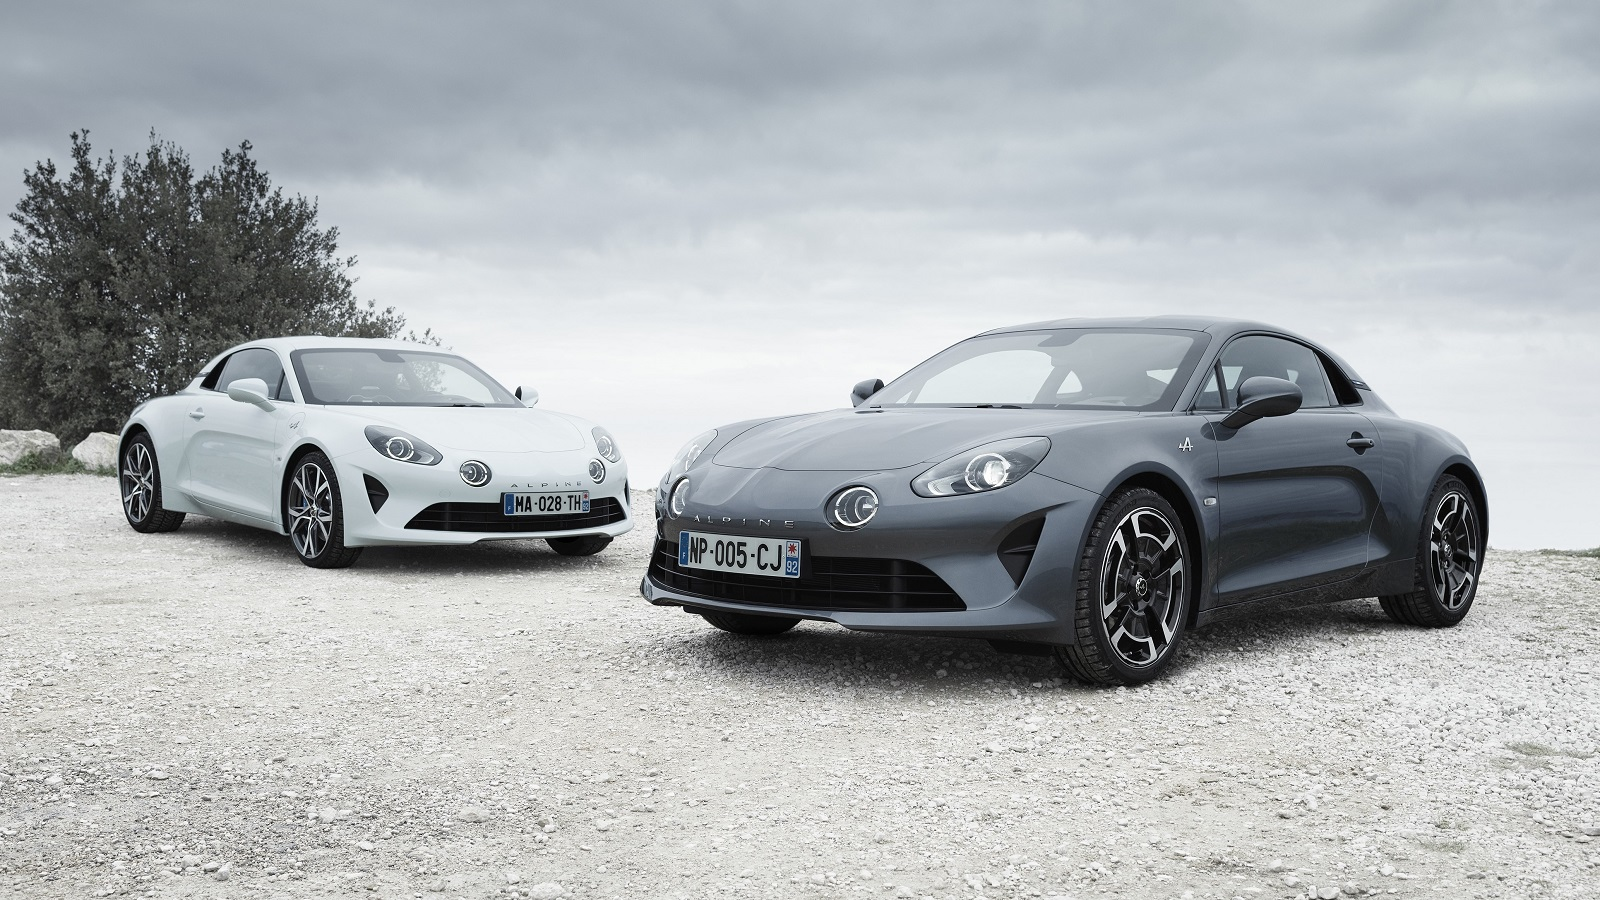 ALPINE A110 Pure e ALPINE A110 Légende